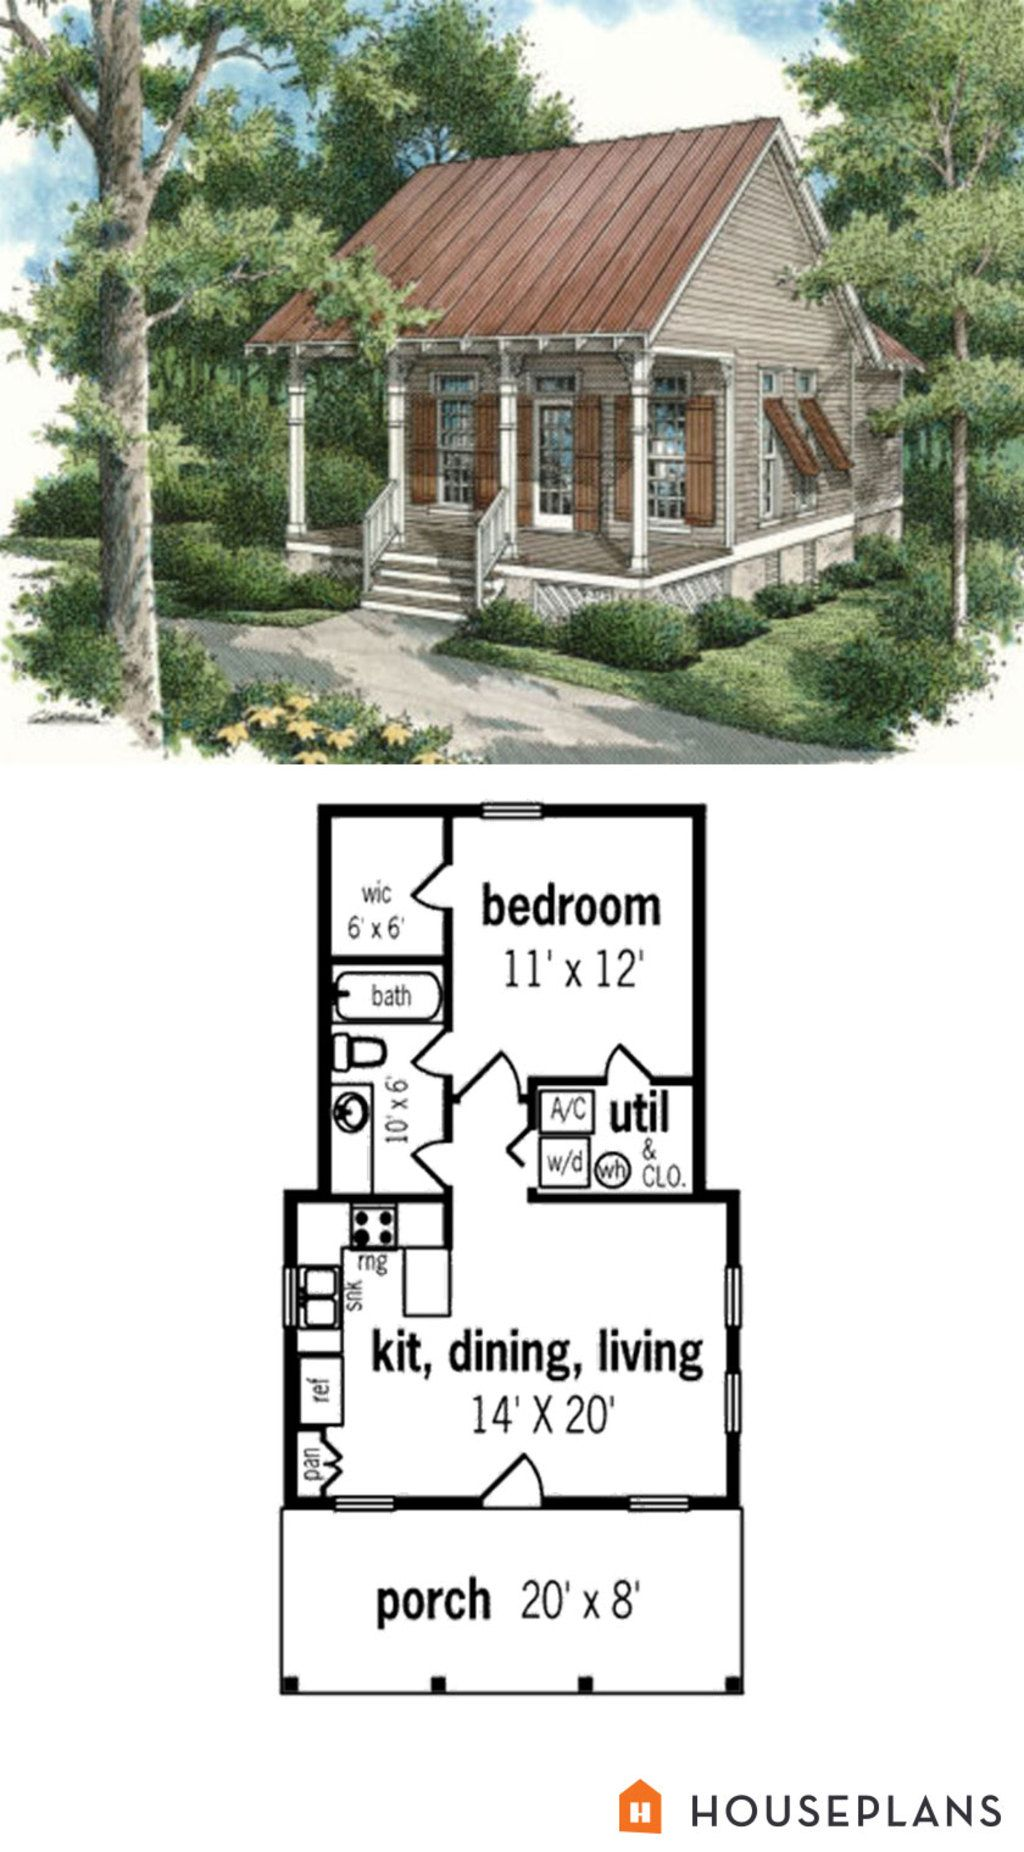 Cottage Style House Plan 1 Beds 1 Baths 569 Sq Ft Plan 45 334 Cottage Style House Plans Cottage Style Homes Cottage Plan